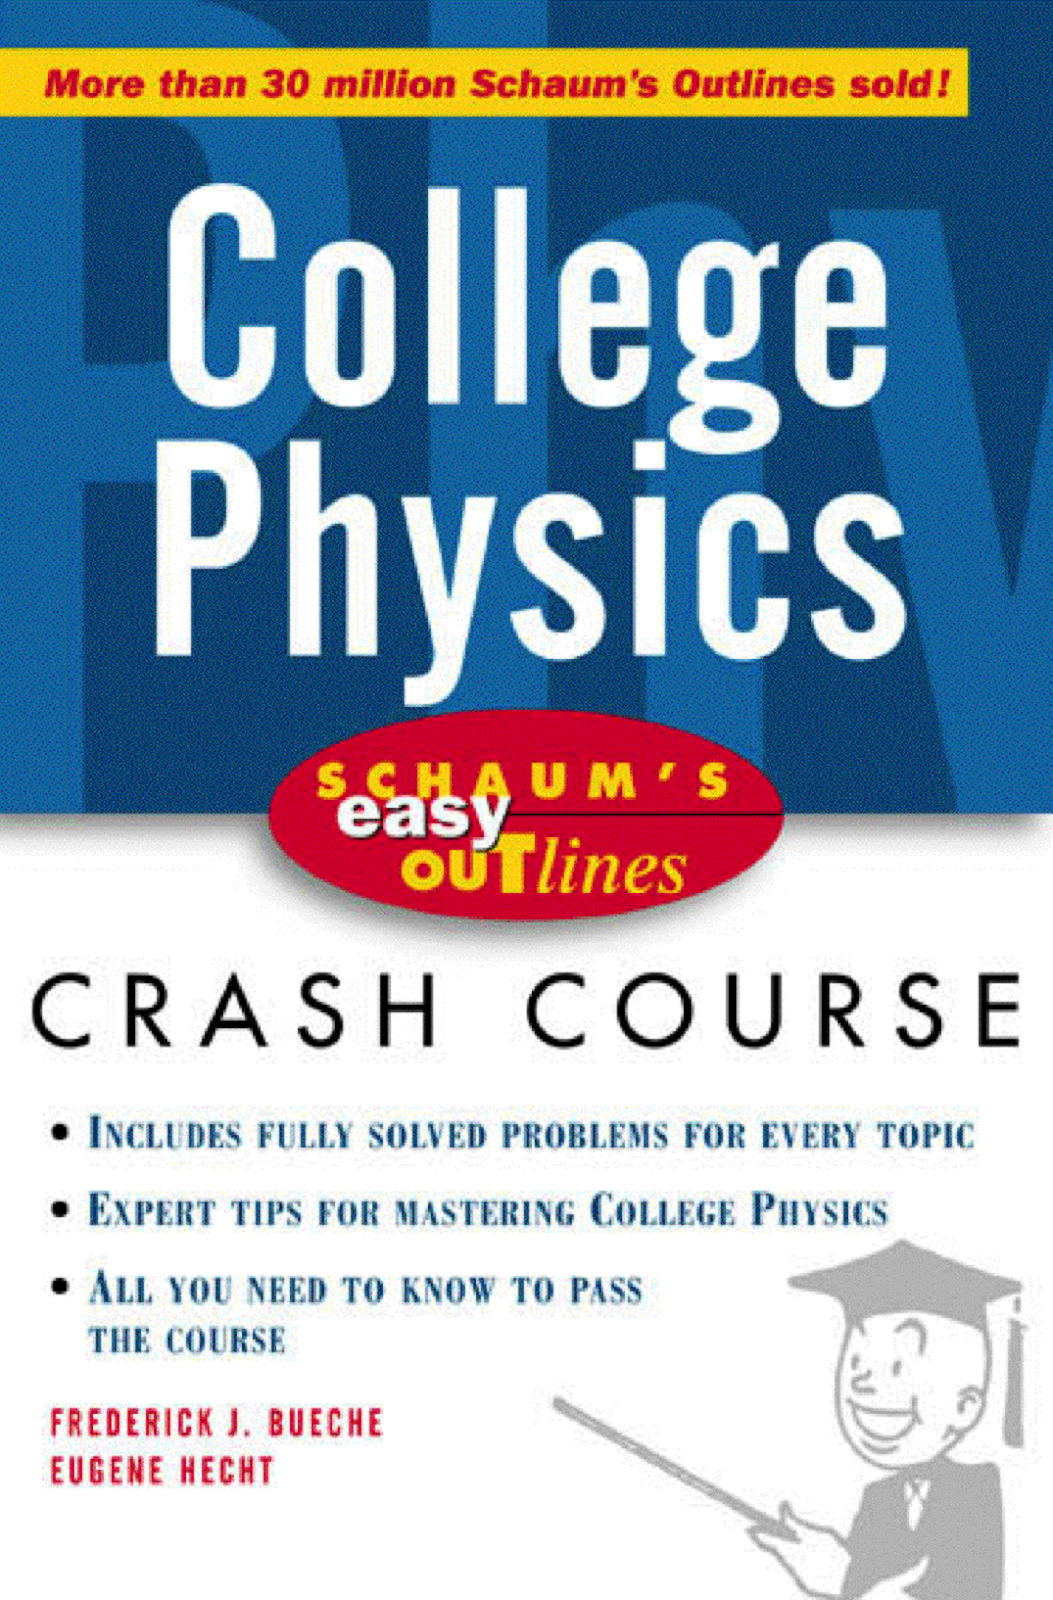 pdf book : College Physics Schaums Outlines ~ House of Physics